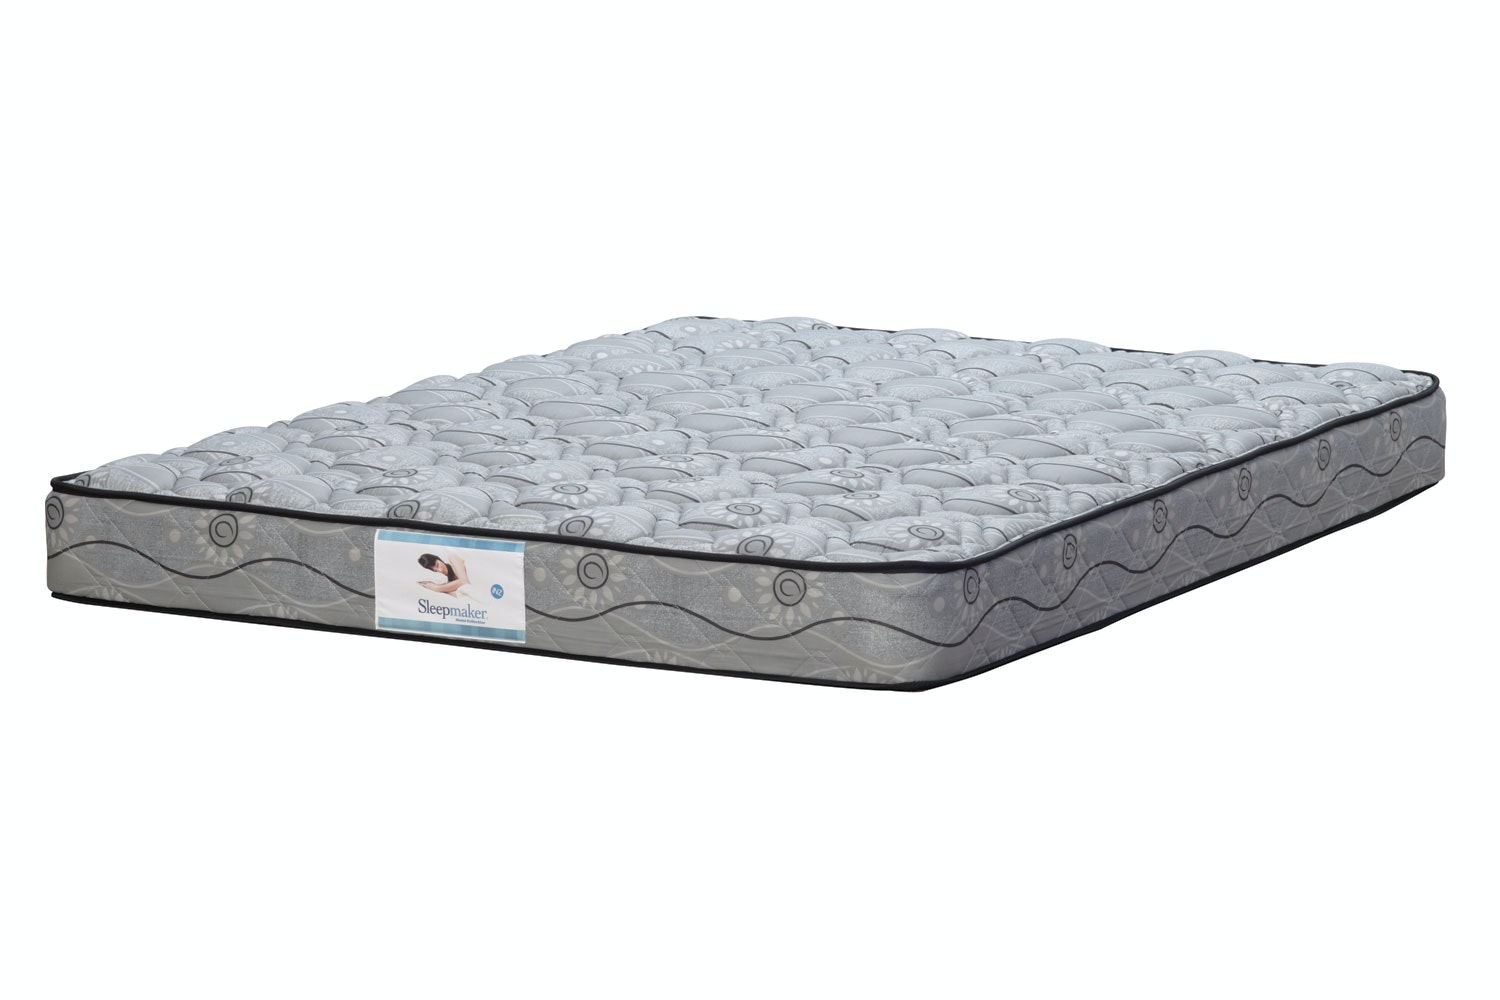 Slumber Support Medium Queen Mattress by Sleepmaker